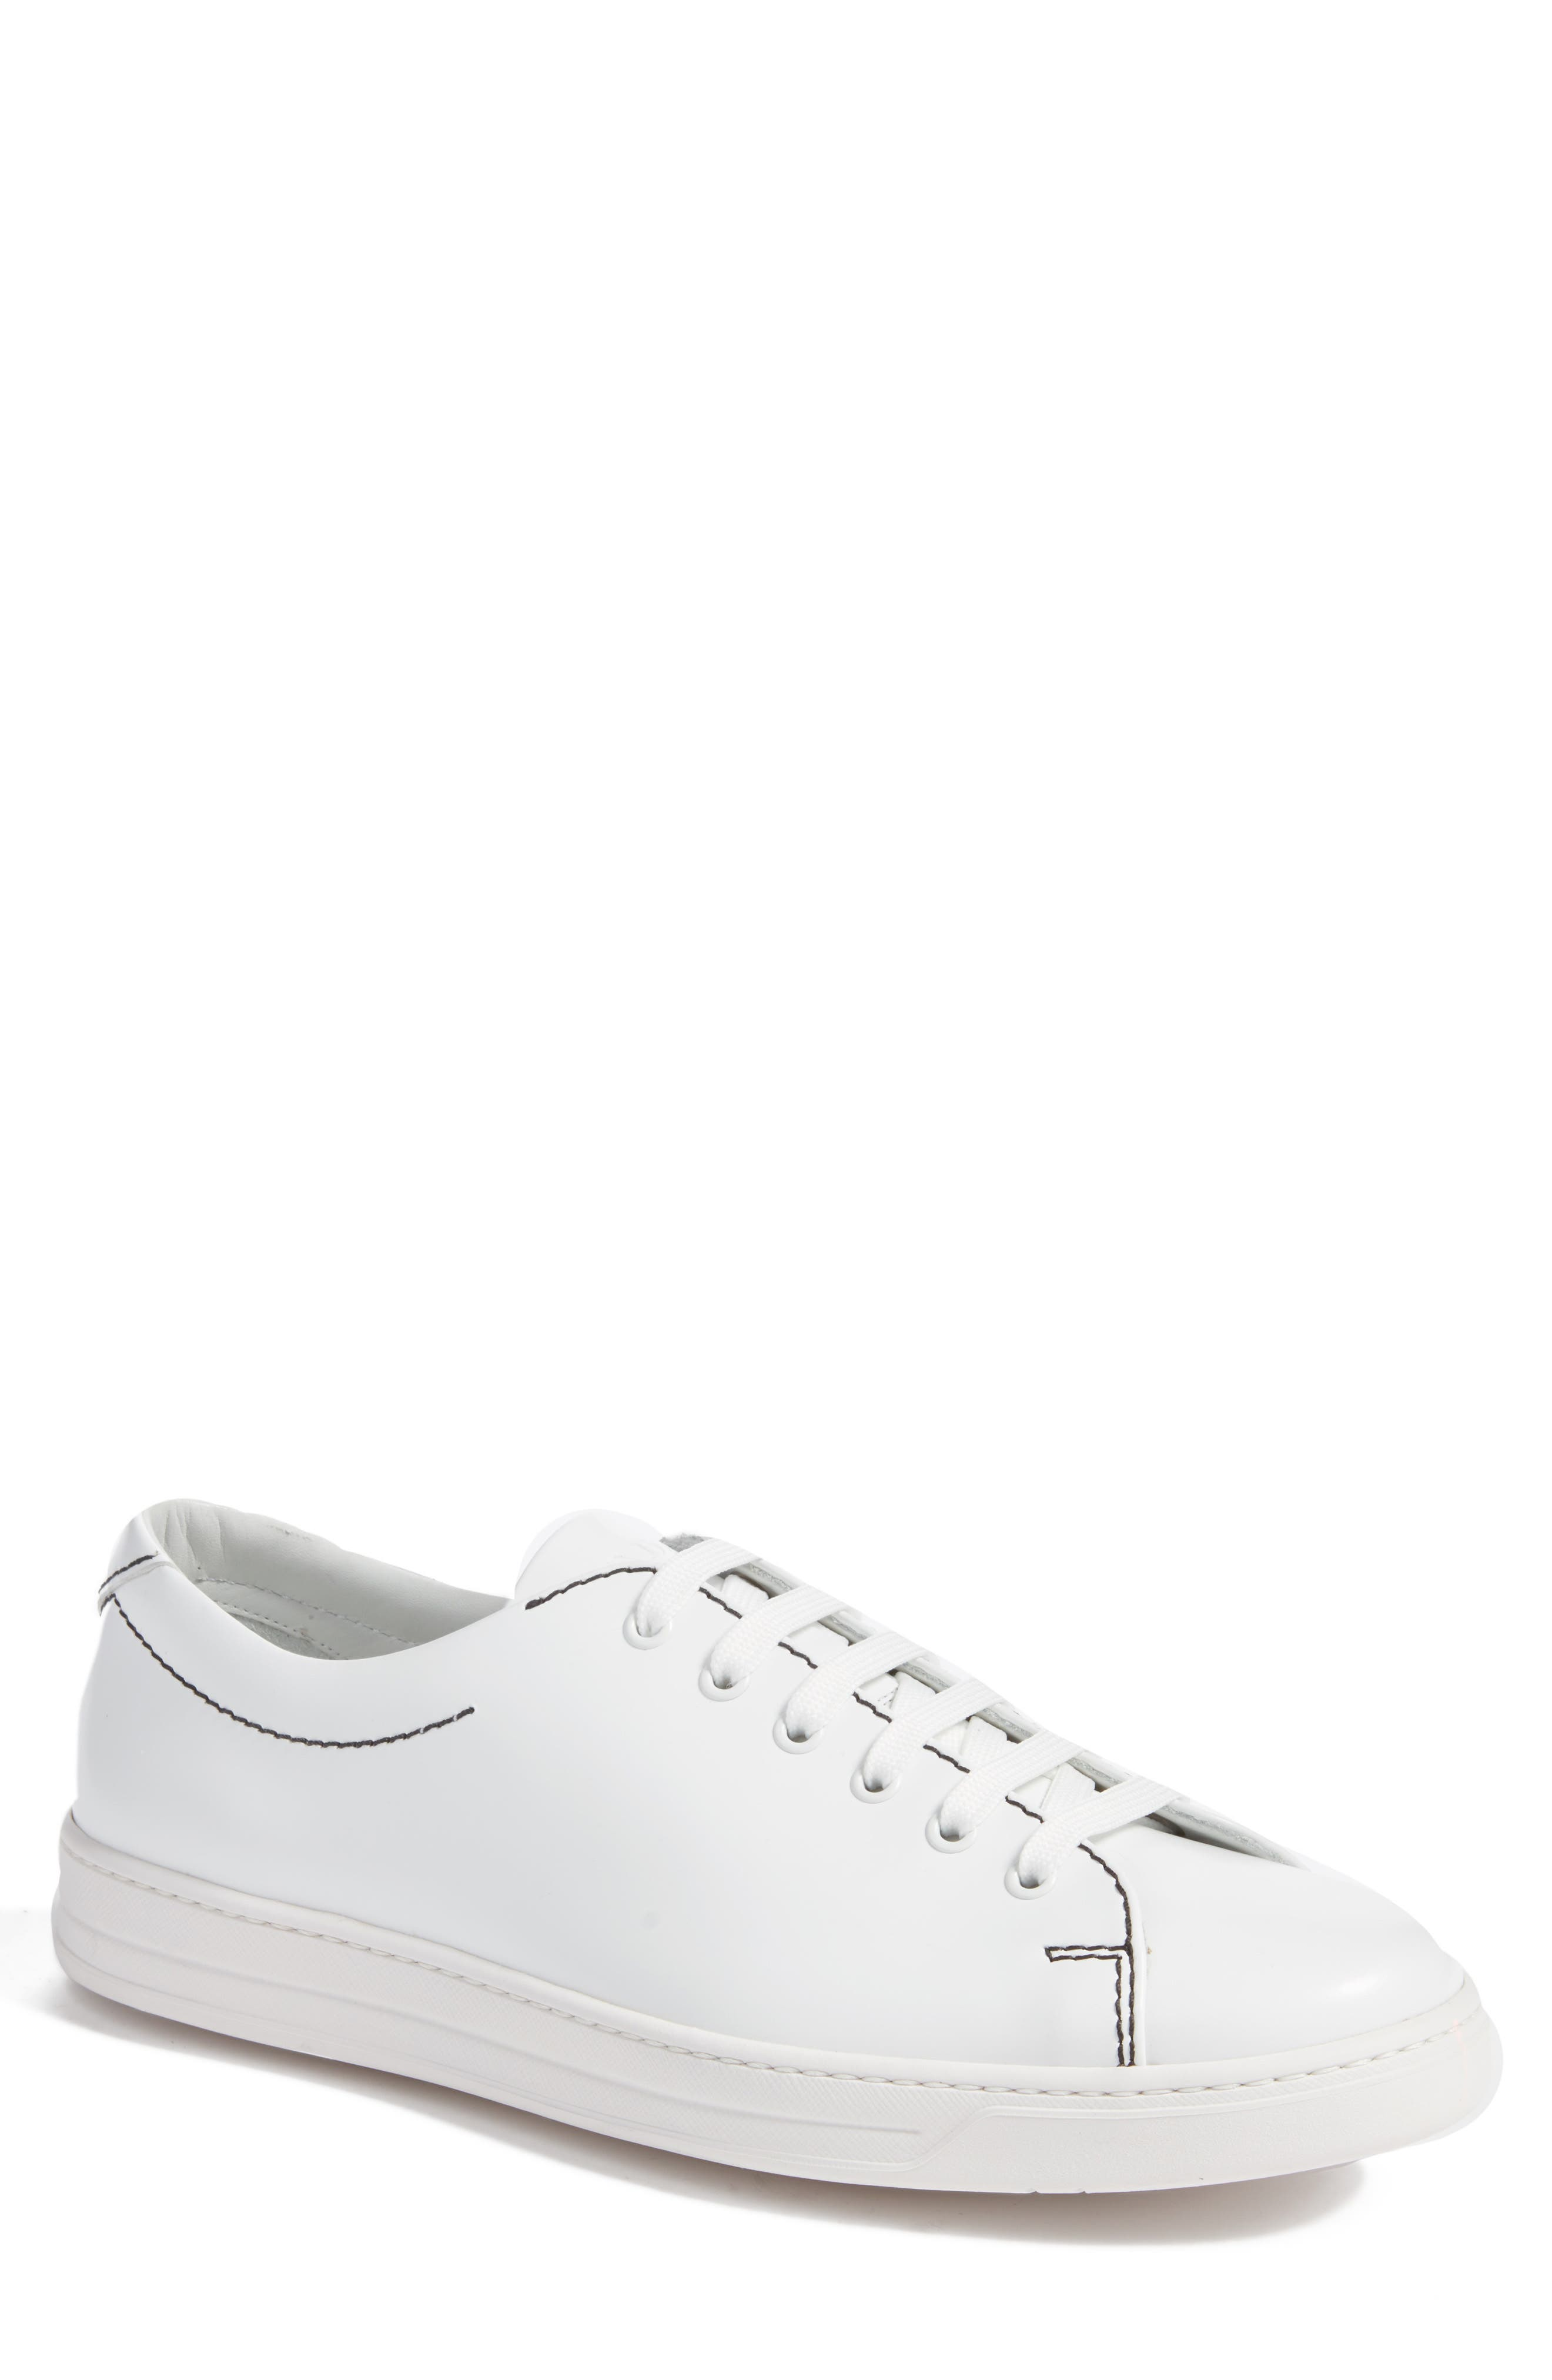 PRADA LINEA ROSSA Low Top Sneaker